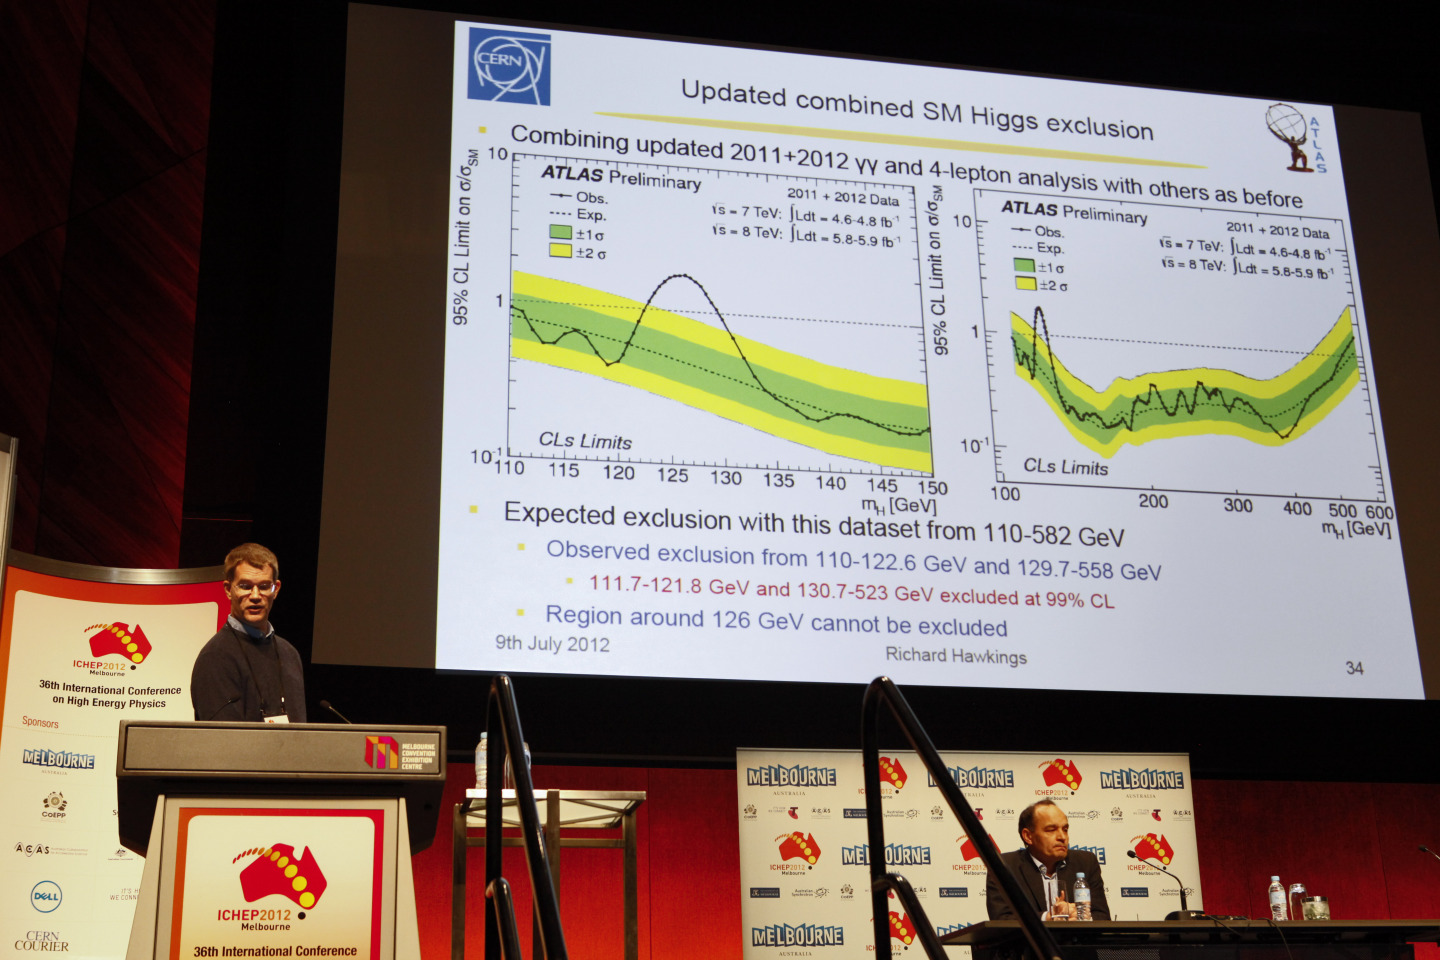 ATLAS,CMS,collaboration,meeting,results,higgsjuly4,ICHEP,Melbourne,Australia,presentation,conference,Collaboration,milestones